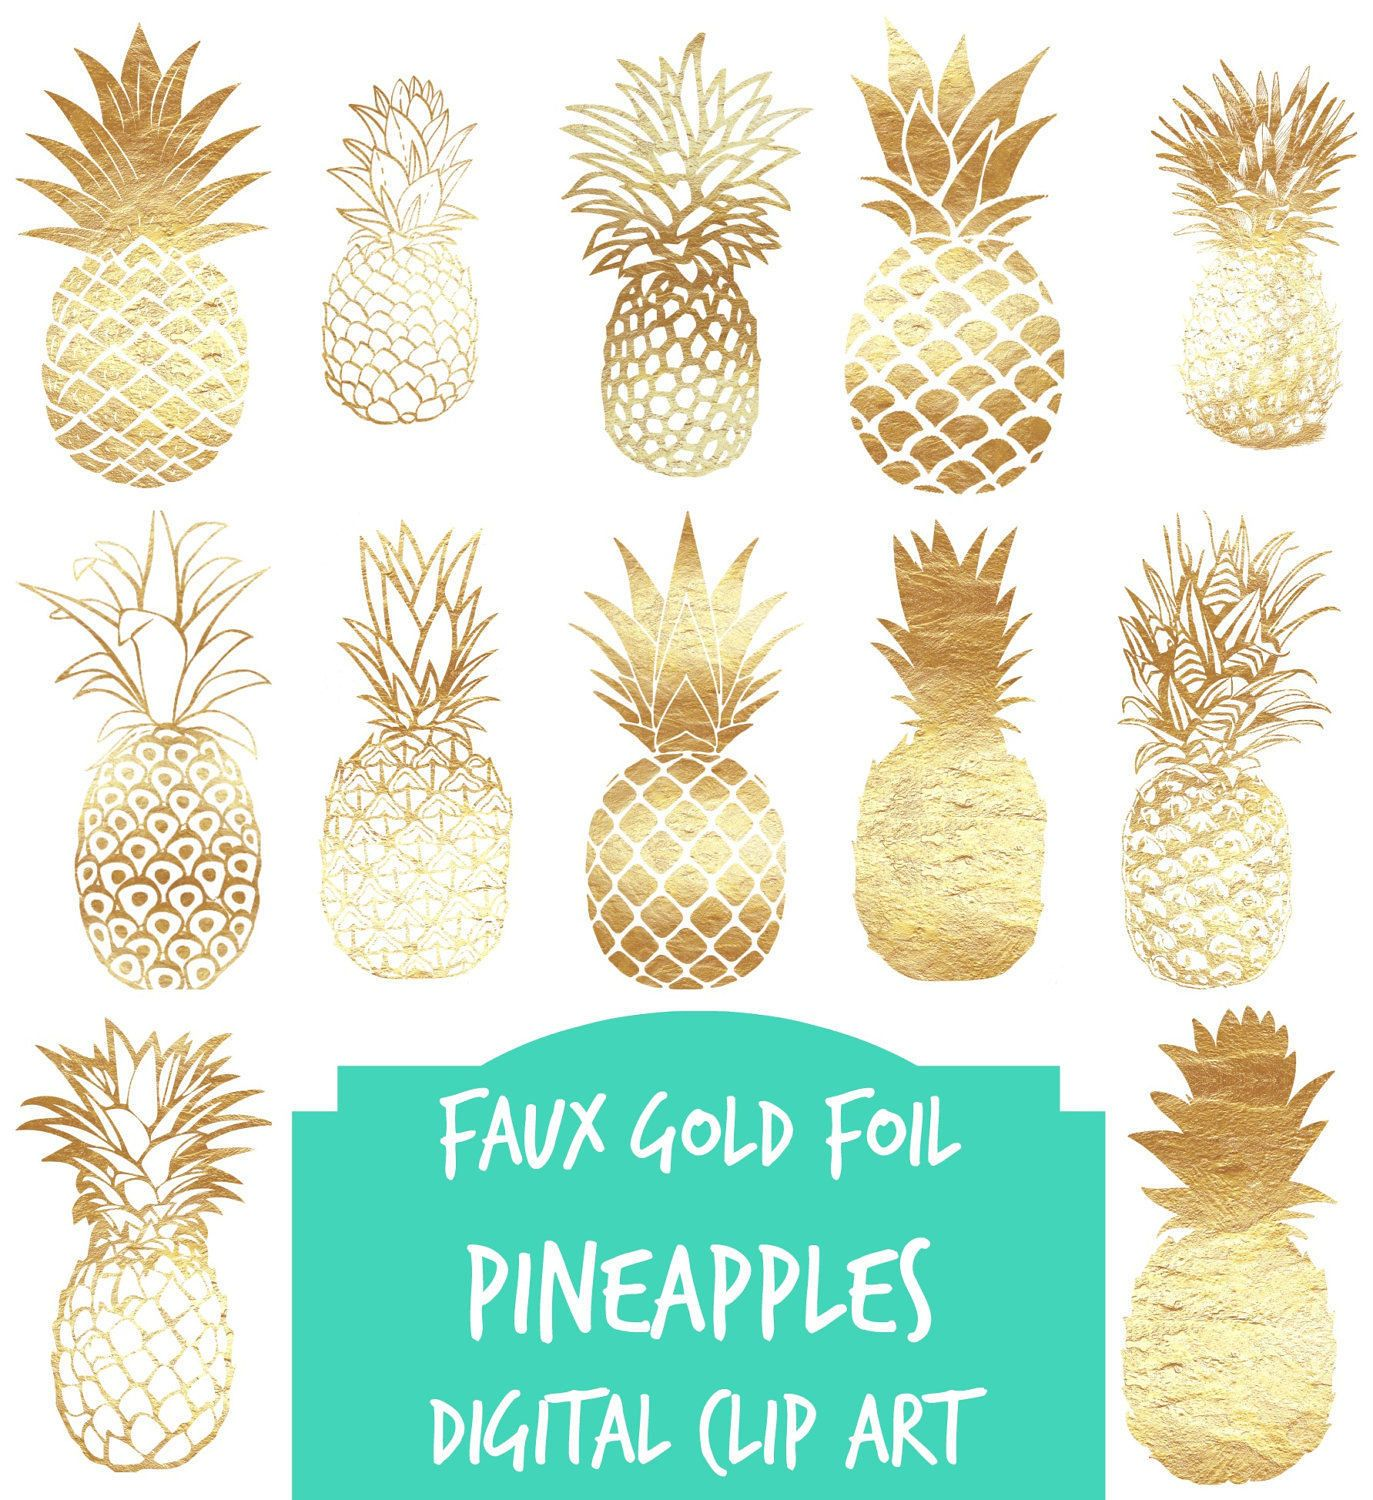 Digital Clip Art 12 Gold Foil Pineapples Digital Clip Art